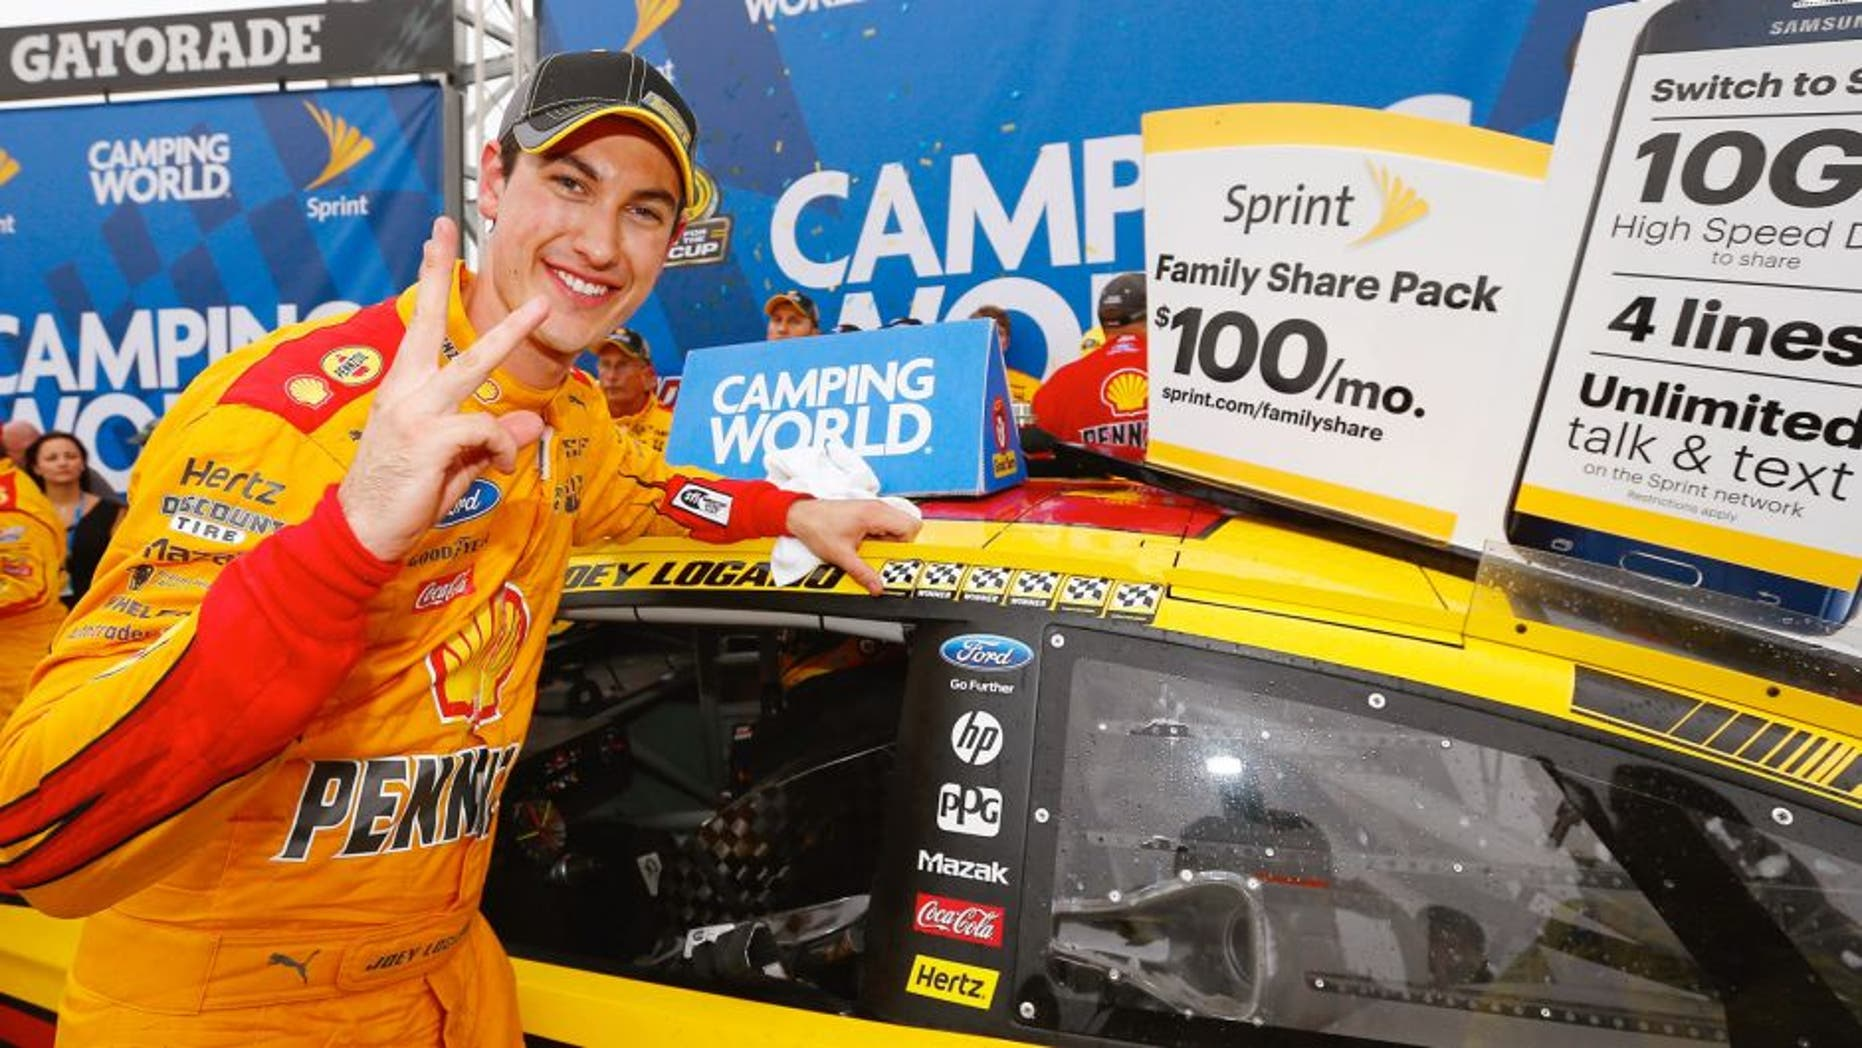 Joey Logano, driver of the #22 Shell Pennzoil Ford, poses with the winner's decal in Victory Lane after winning the NASCAR Sprint Cup Series CampingWorld.com 500 at Talladega Superspeedway on October 25, 2015 in Talladega, Alabama. (Photo by Jonathan Ferrey/NASCAR via Getty Images)